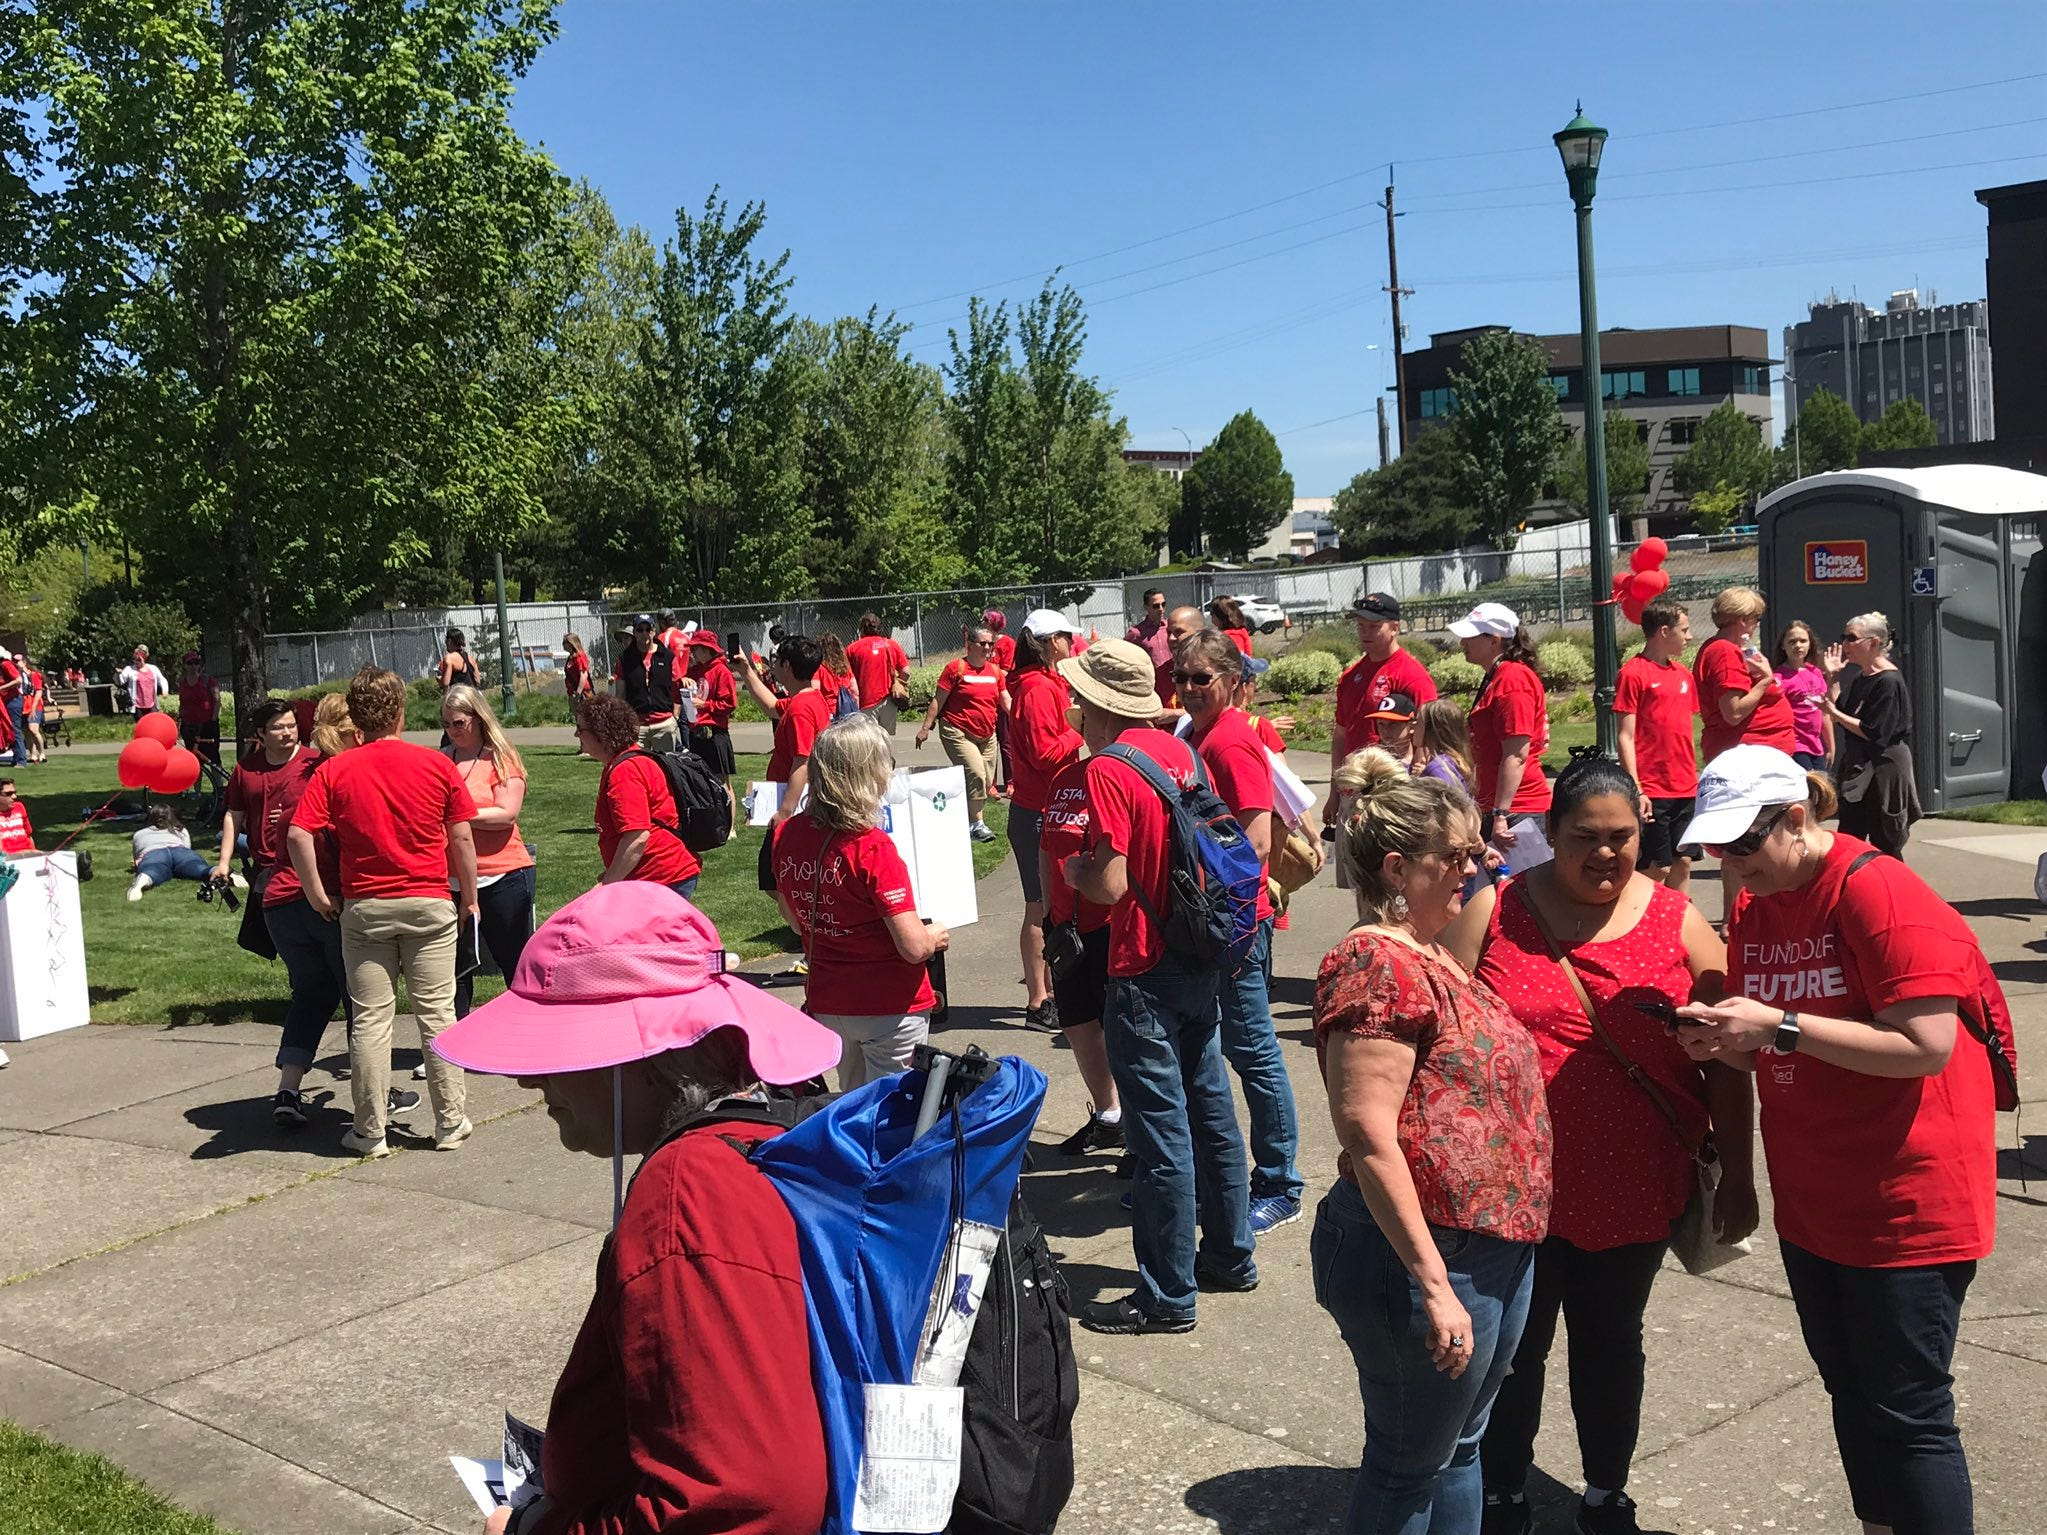 Supporters gather before the planned march to the Capitol at Salem's Riverfront Park Wednesday, May 8, 2019.